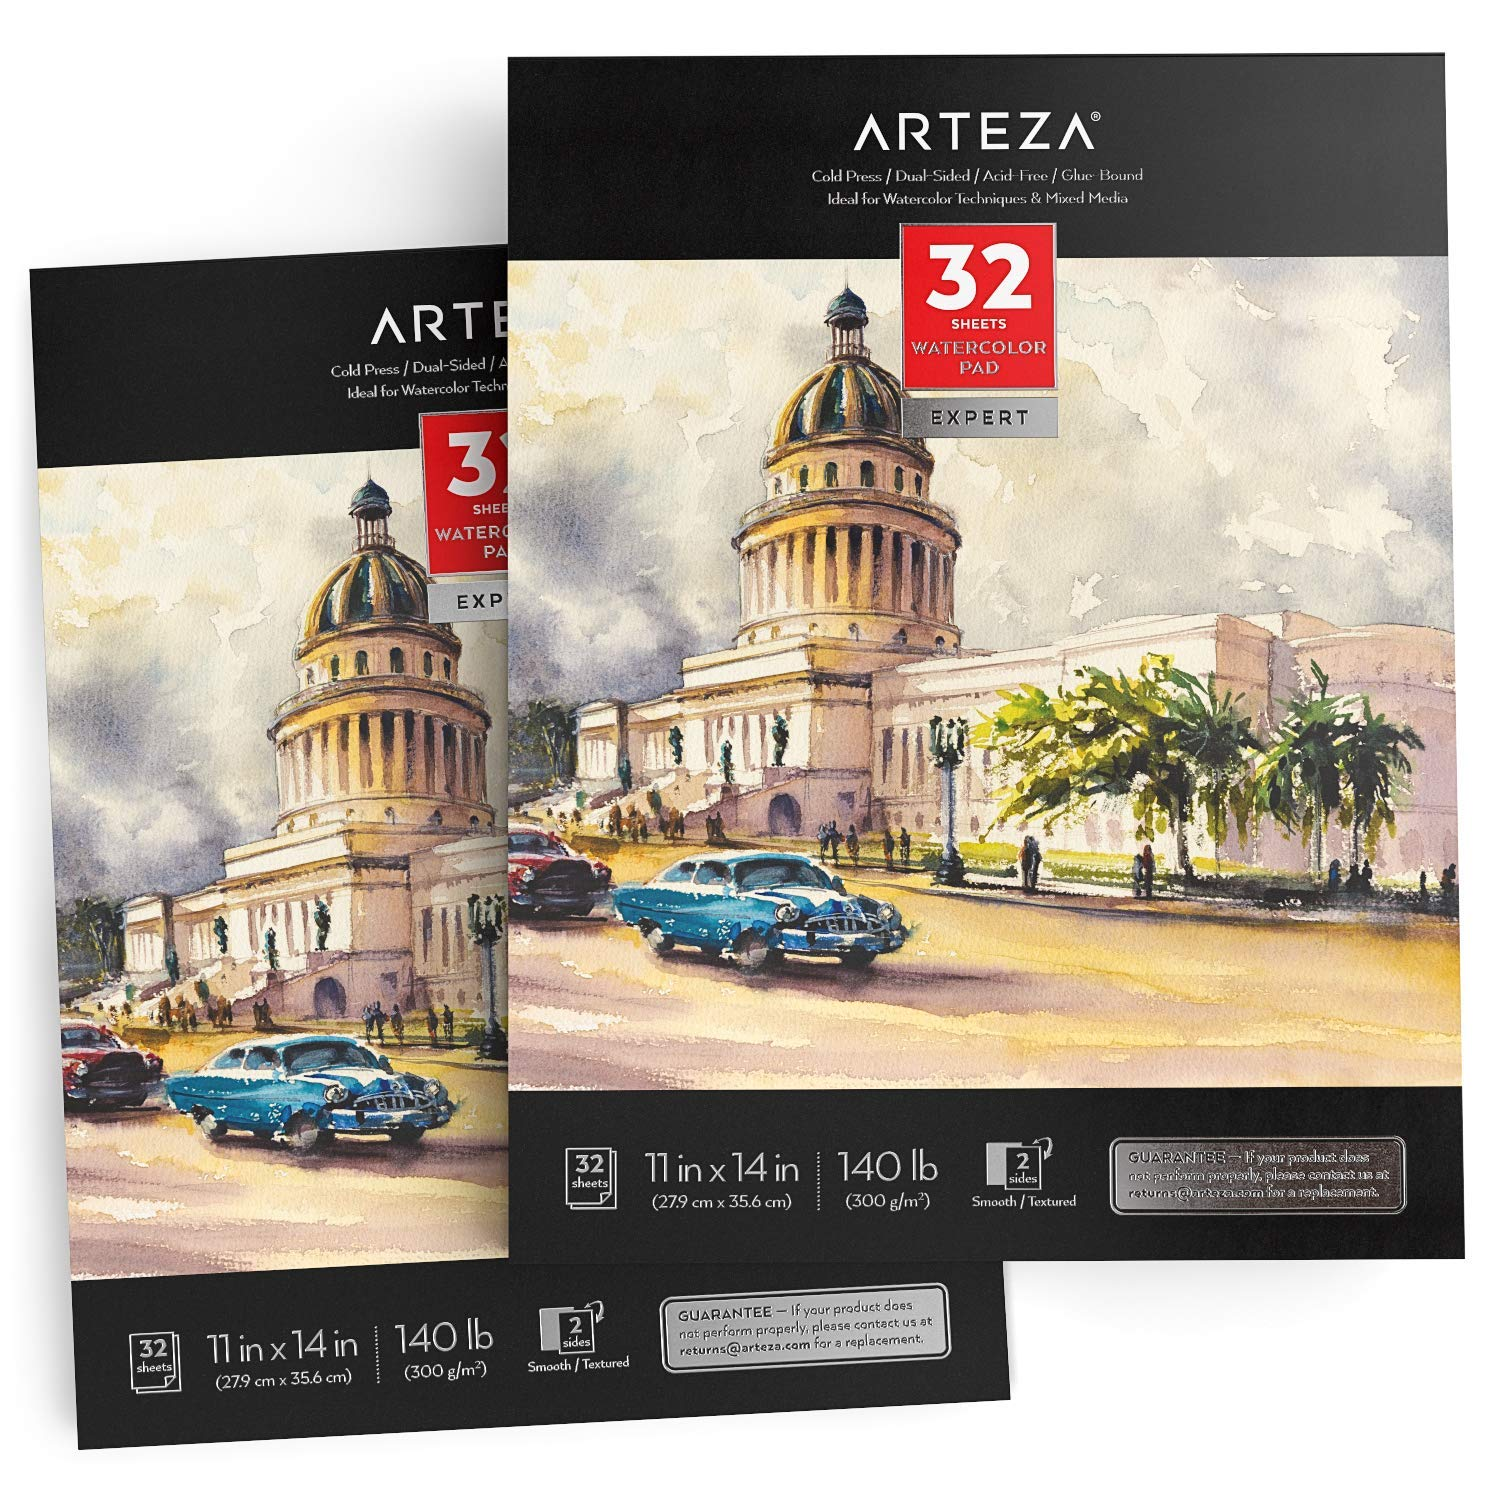 64 Sheets Ideal for Watercolor Techniques and Mixed Media Acid Free Paper Pack of 2 32 Sheets Each 140lb//300gsm ARTEZA 11x14 Expert Watercolor Pad Cold Pressed